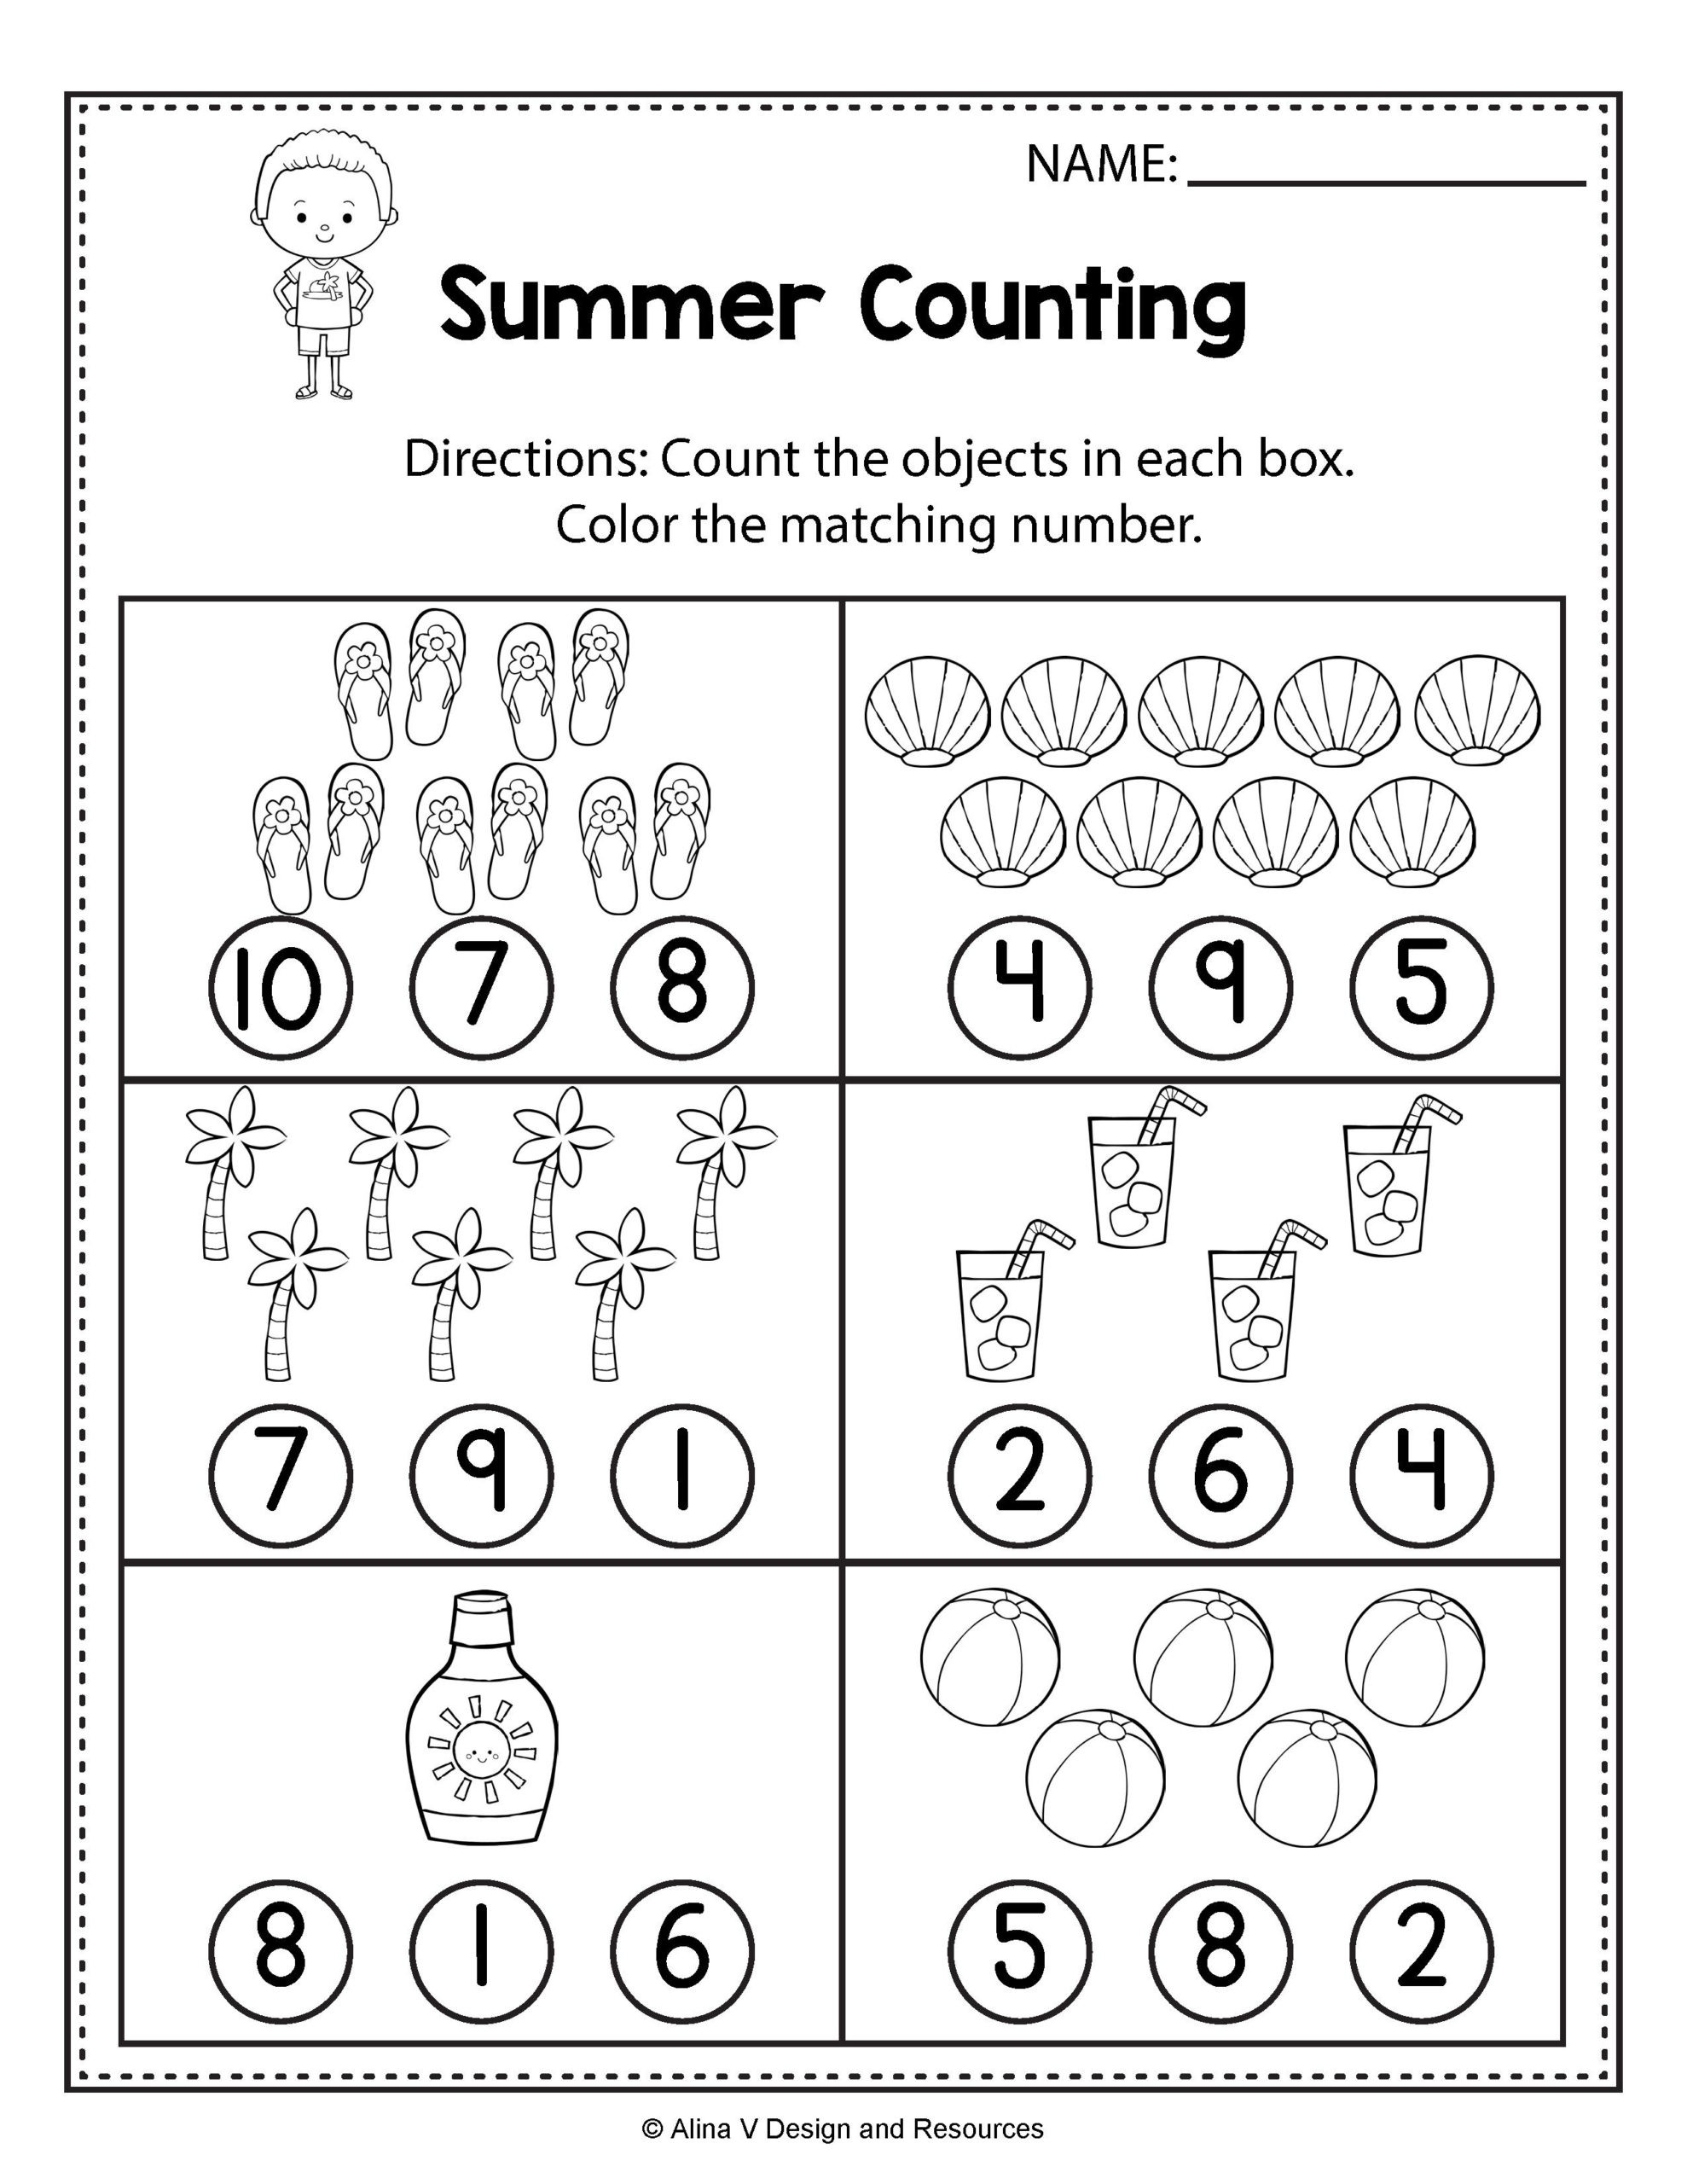 Fraction Worksheets First Grade Monthly Archives July 2020 Page 2 5th Grade Reading